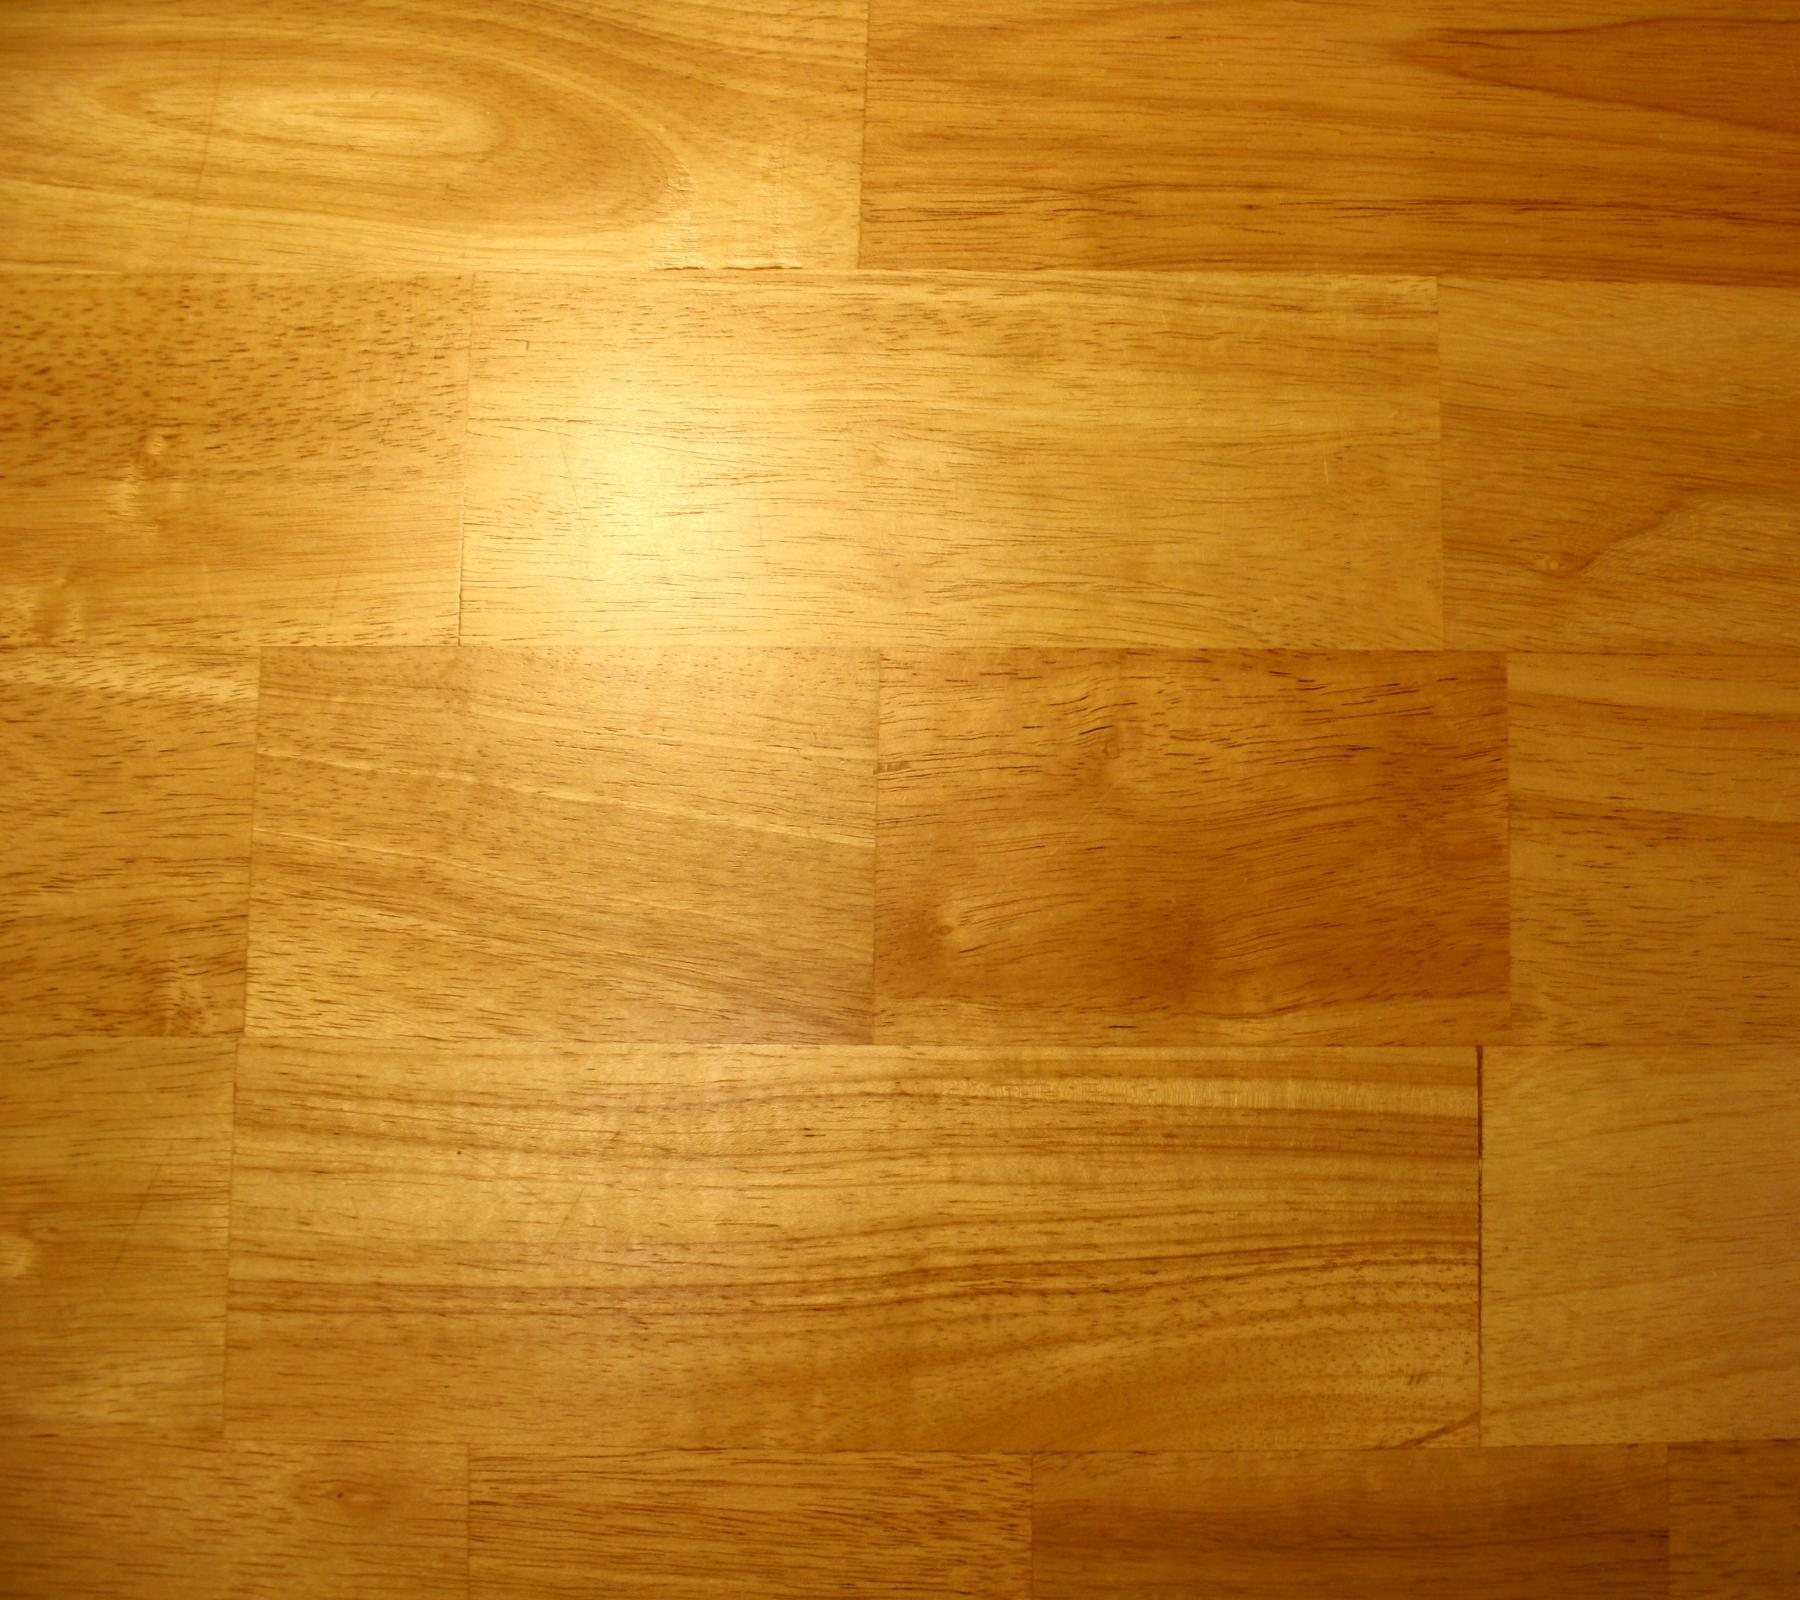 Hardwood Floor Background 1800x1600 Background Image